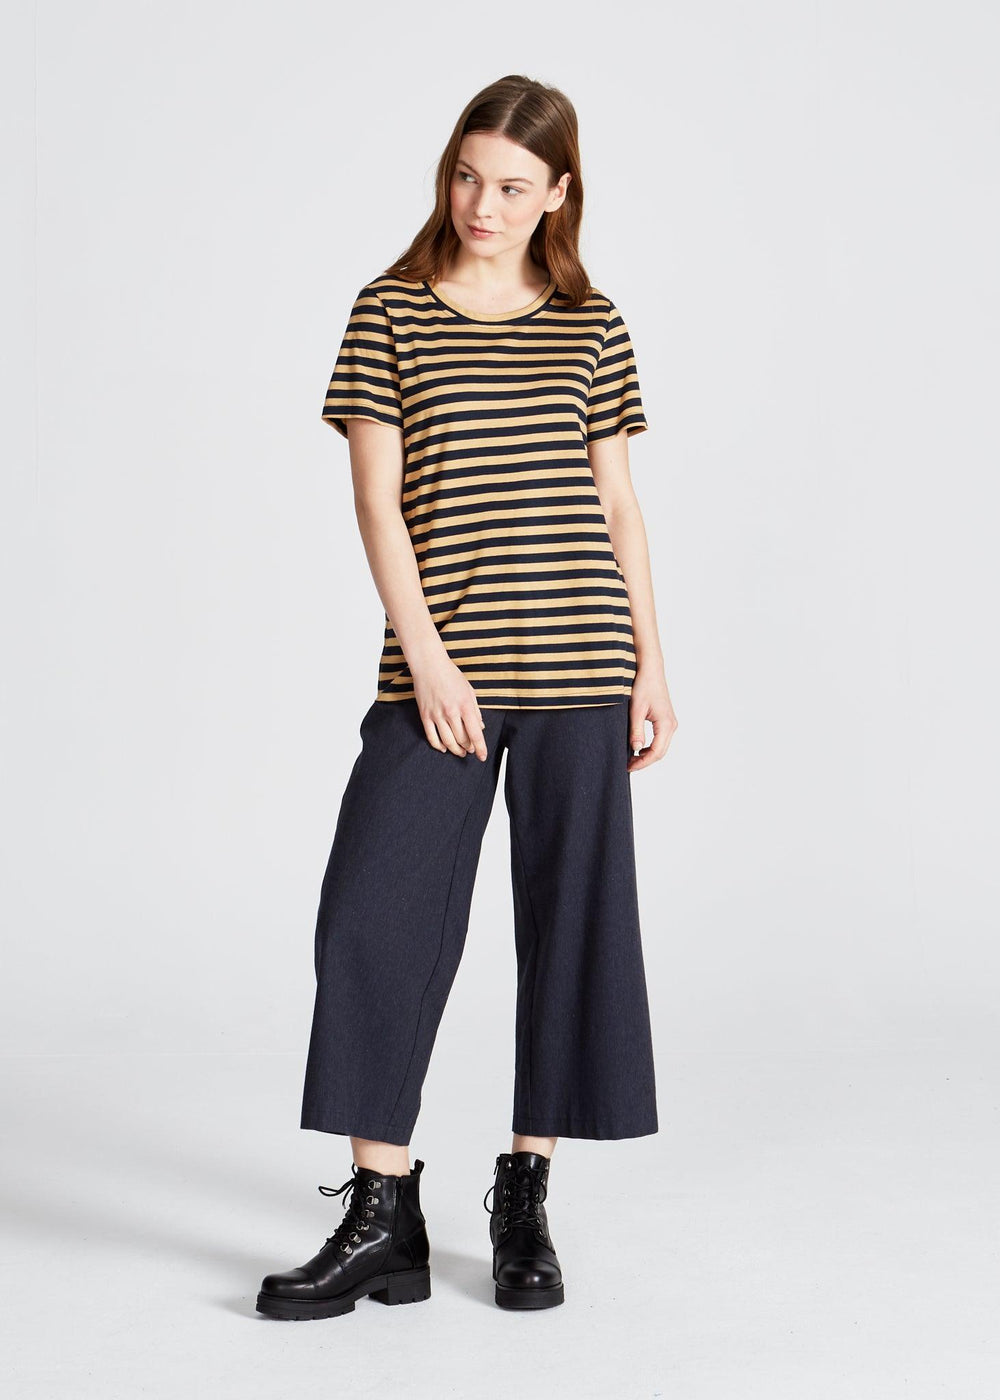 Givn BERLIN Lena T-Shirt Blue / Camel (Stripes)